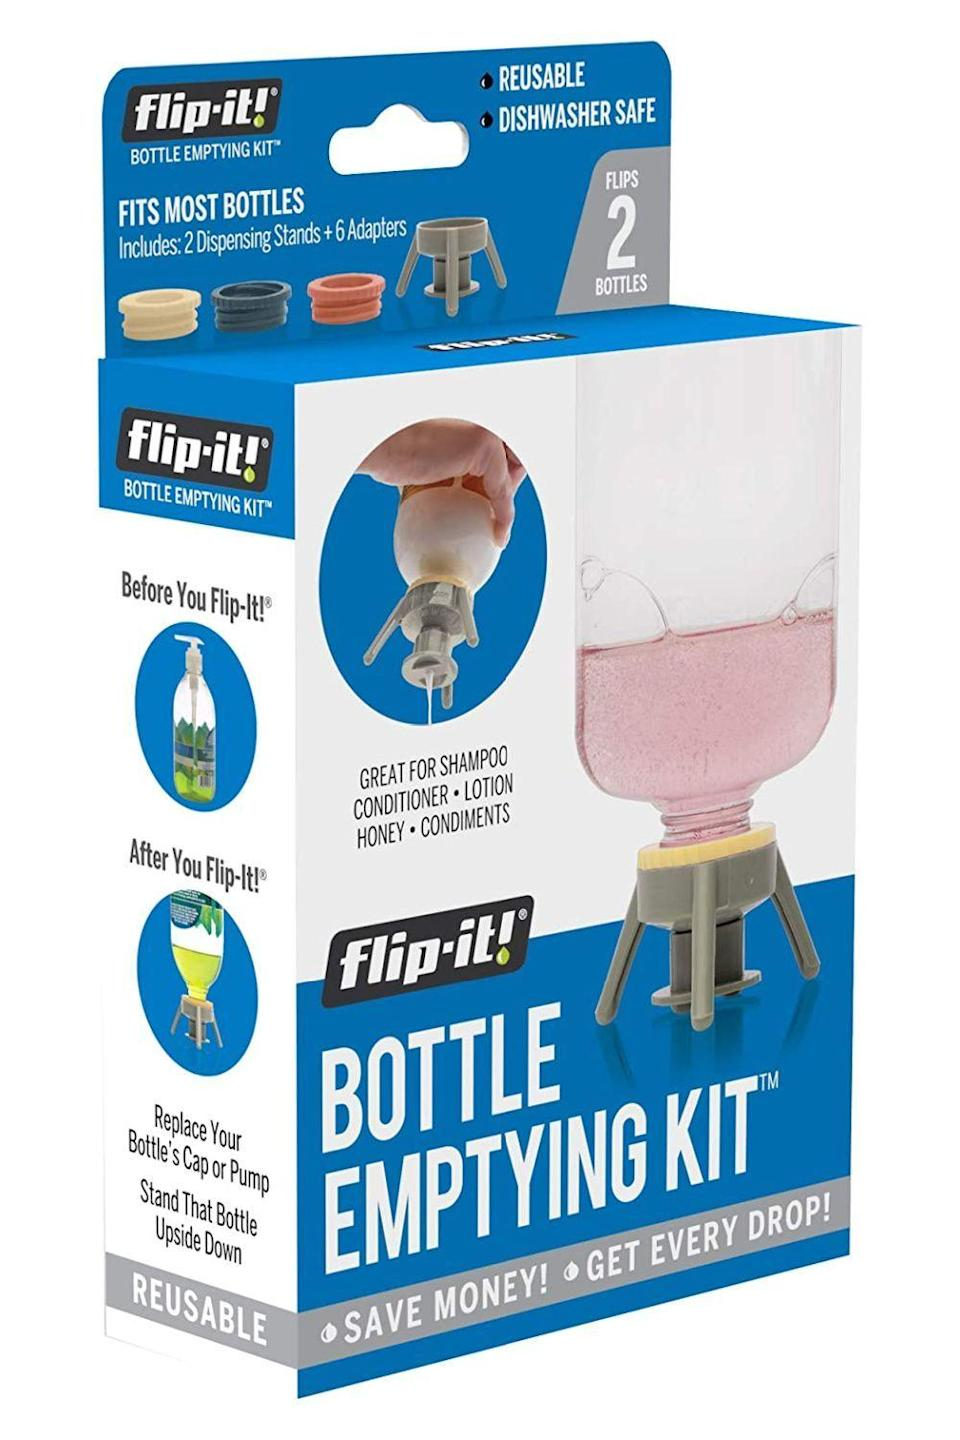 """<p><strong>Flip-It!</strong></p><p>amazon.com</p><p><strong>$13.99</strong></p><p><a href=""""https://www.amazon.com/dp/B079C4B8V8?tag=syn-yahoo-20&ascsubtag=%5Bartid%7C2140.g.35717314%5Bsrc%7Cyahoo-us"""" rel=""""nofollow noopener"""" target=""""_blank"""" data-ylk=""""slk:shop"""" class=""""link rapid-noclick-resp"""">shop</a></p><p>Throwing away the last bit of your expensive <a href=""""https://www.cosmopolitan.com/style-beauty/beauty/g2149/best-shampoo-conditioner/"""" rel=""""nofollow noopener"""" target=""""_blank"""" data-ylk=""""slk:shampoo and conditioner"""" class=""""link rapid-noclick-resp"""">shampoo and conditioner</a> is *heartbreaking.* While flipping your products over is the oldest trick in the book, if your bottle has a pump dispenser or a weirdly small lid, get these lid props to easily store your products upside down.</p>"""